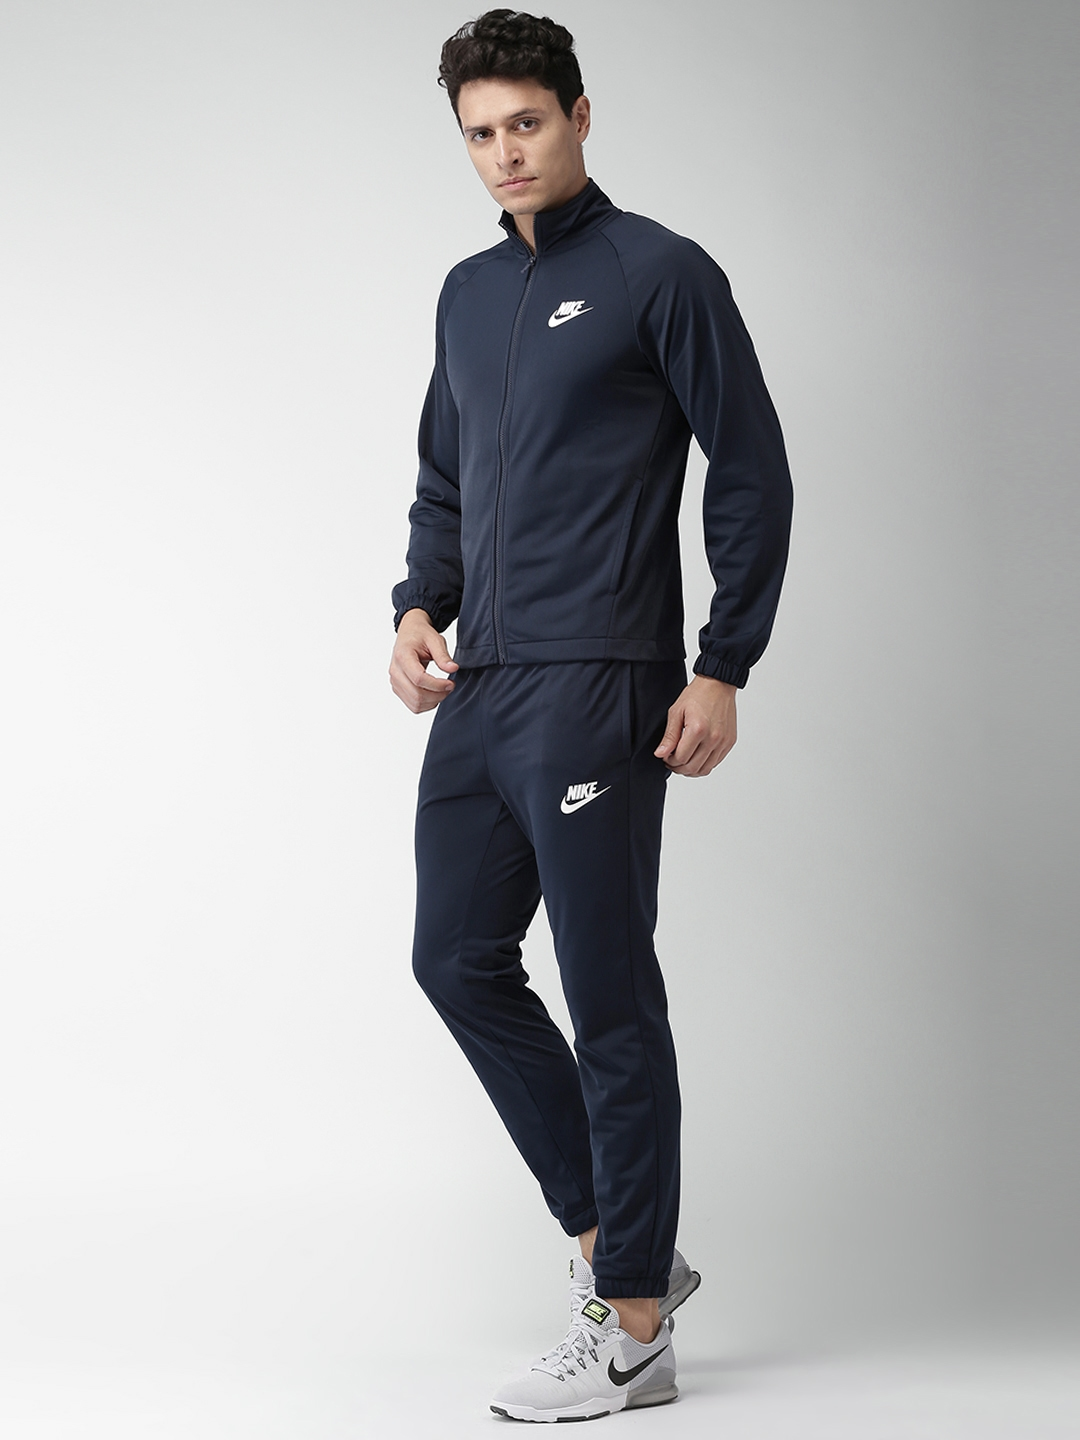 65499ba0f Buy Nike Navy Blue AS M NSW TRK SUIT PK BASIC Tracksuit - Tracksuits ...